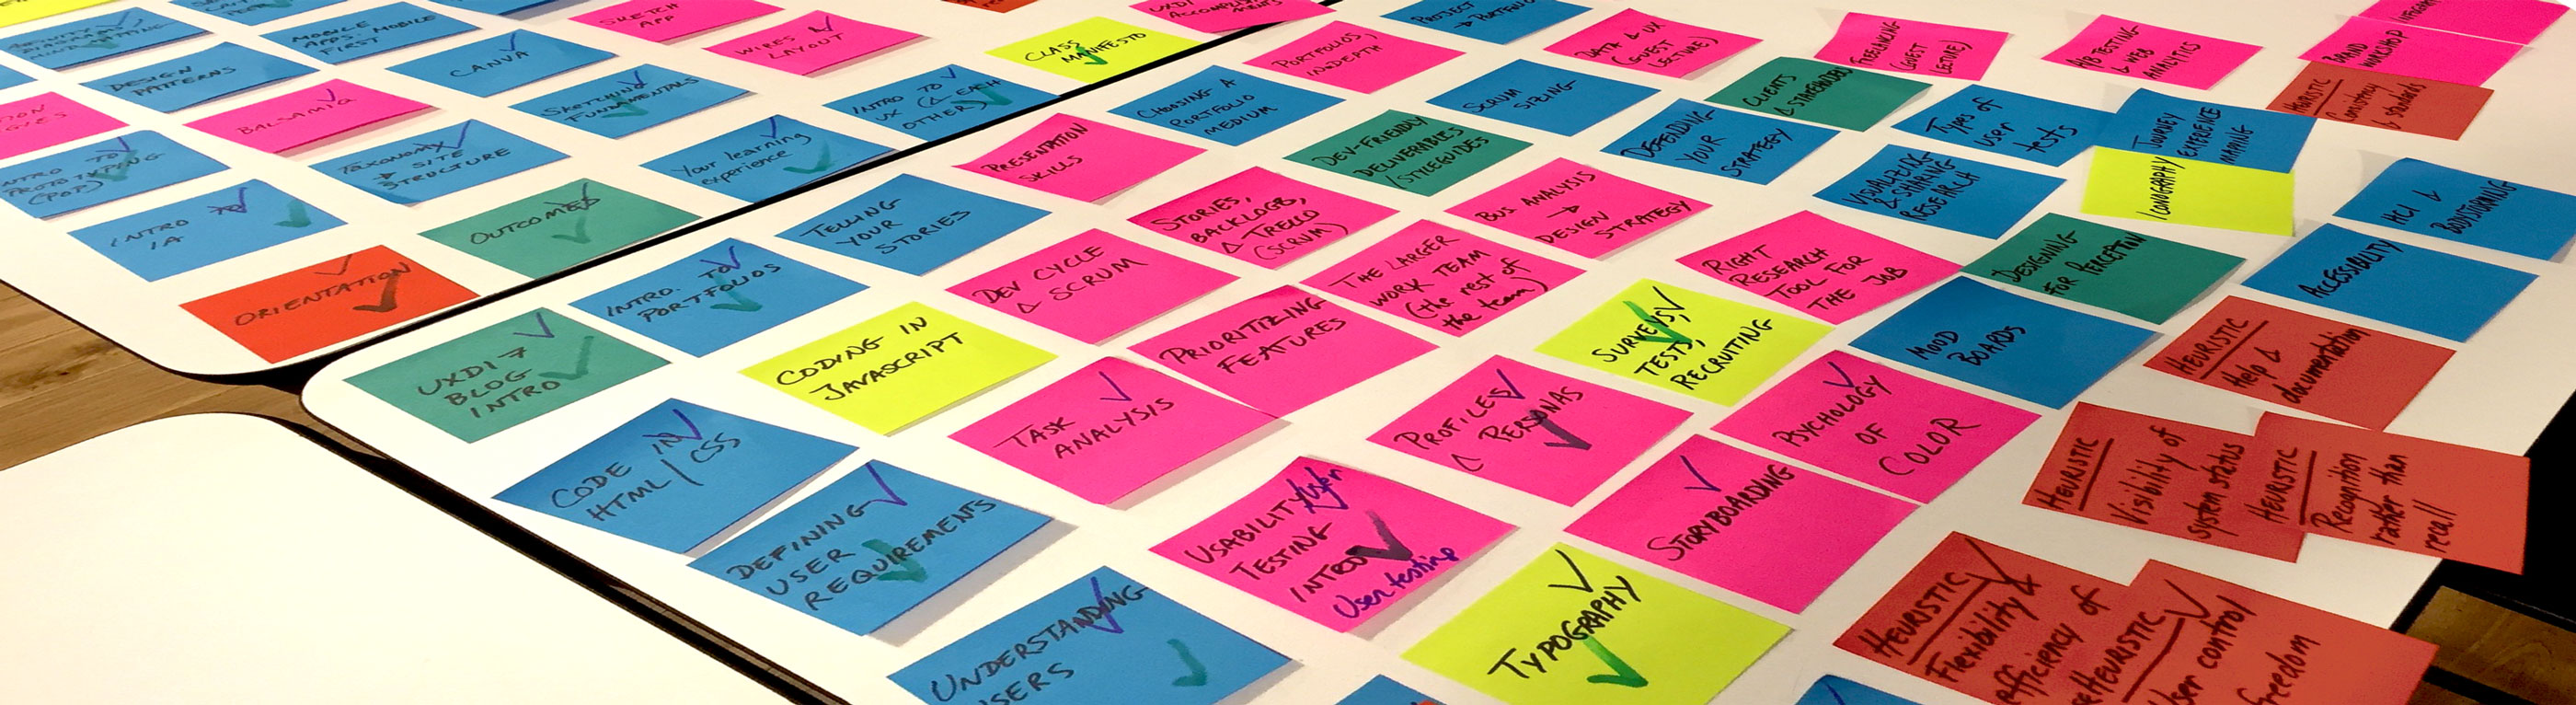 planning post-it notes for UX Design Immersive syllabus learning paths